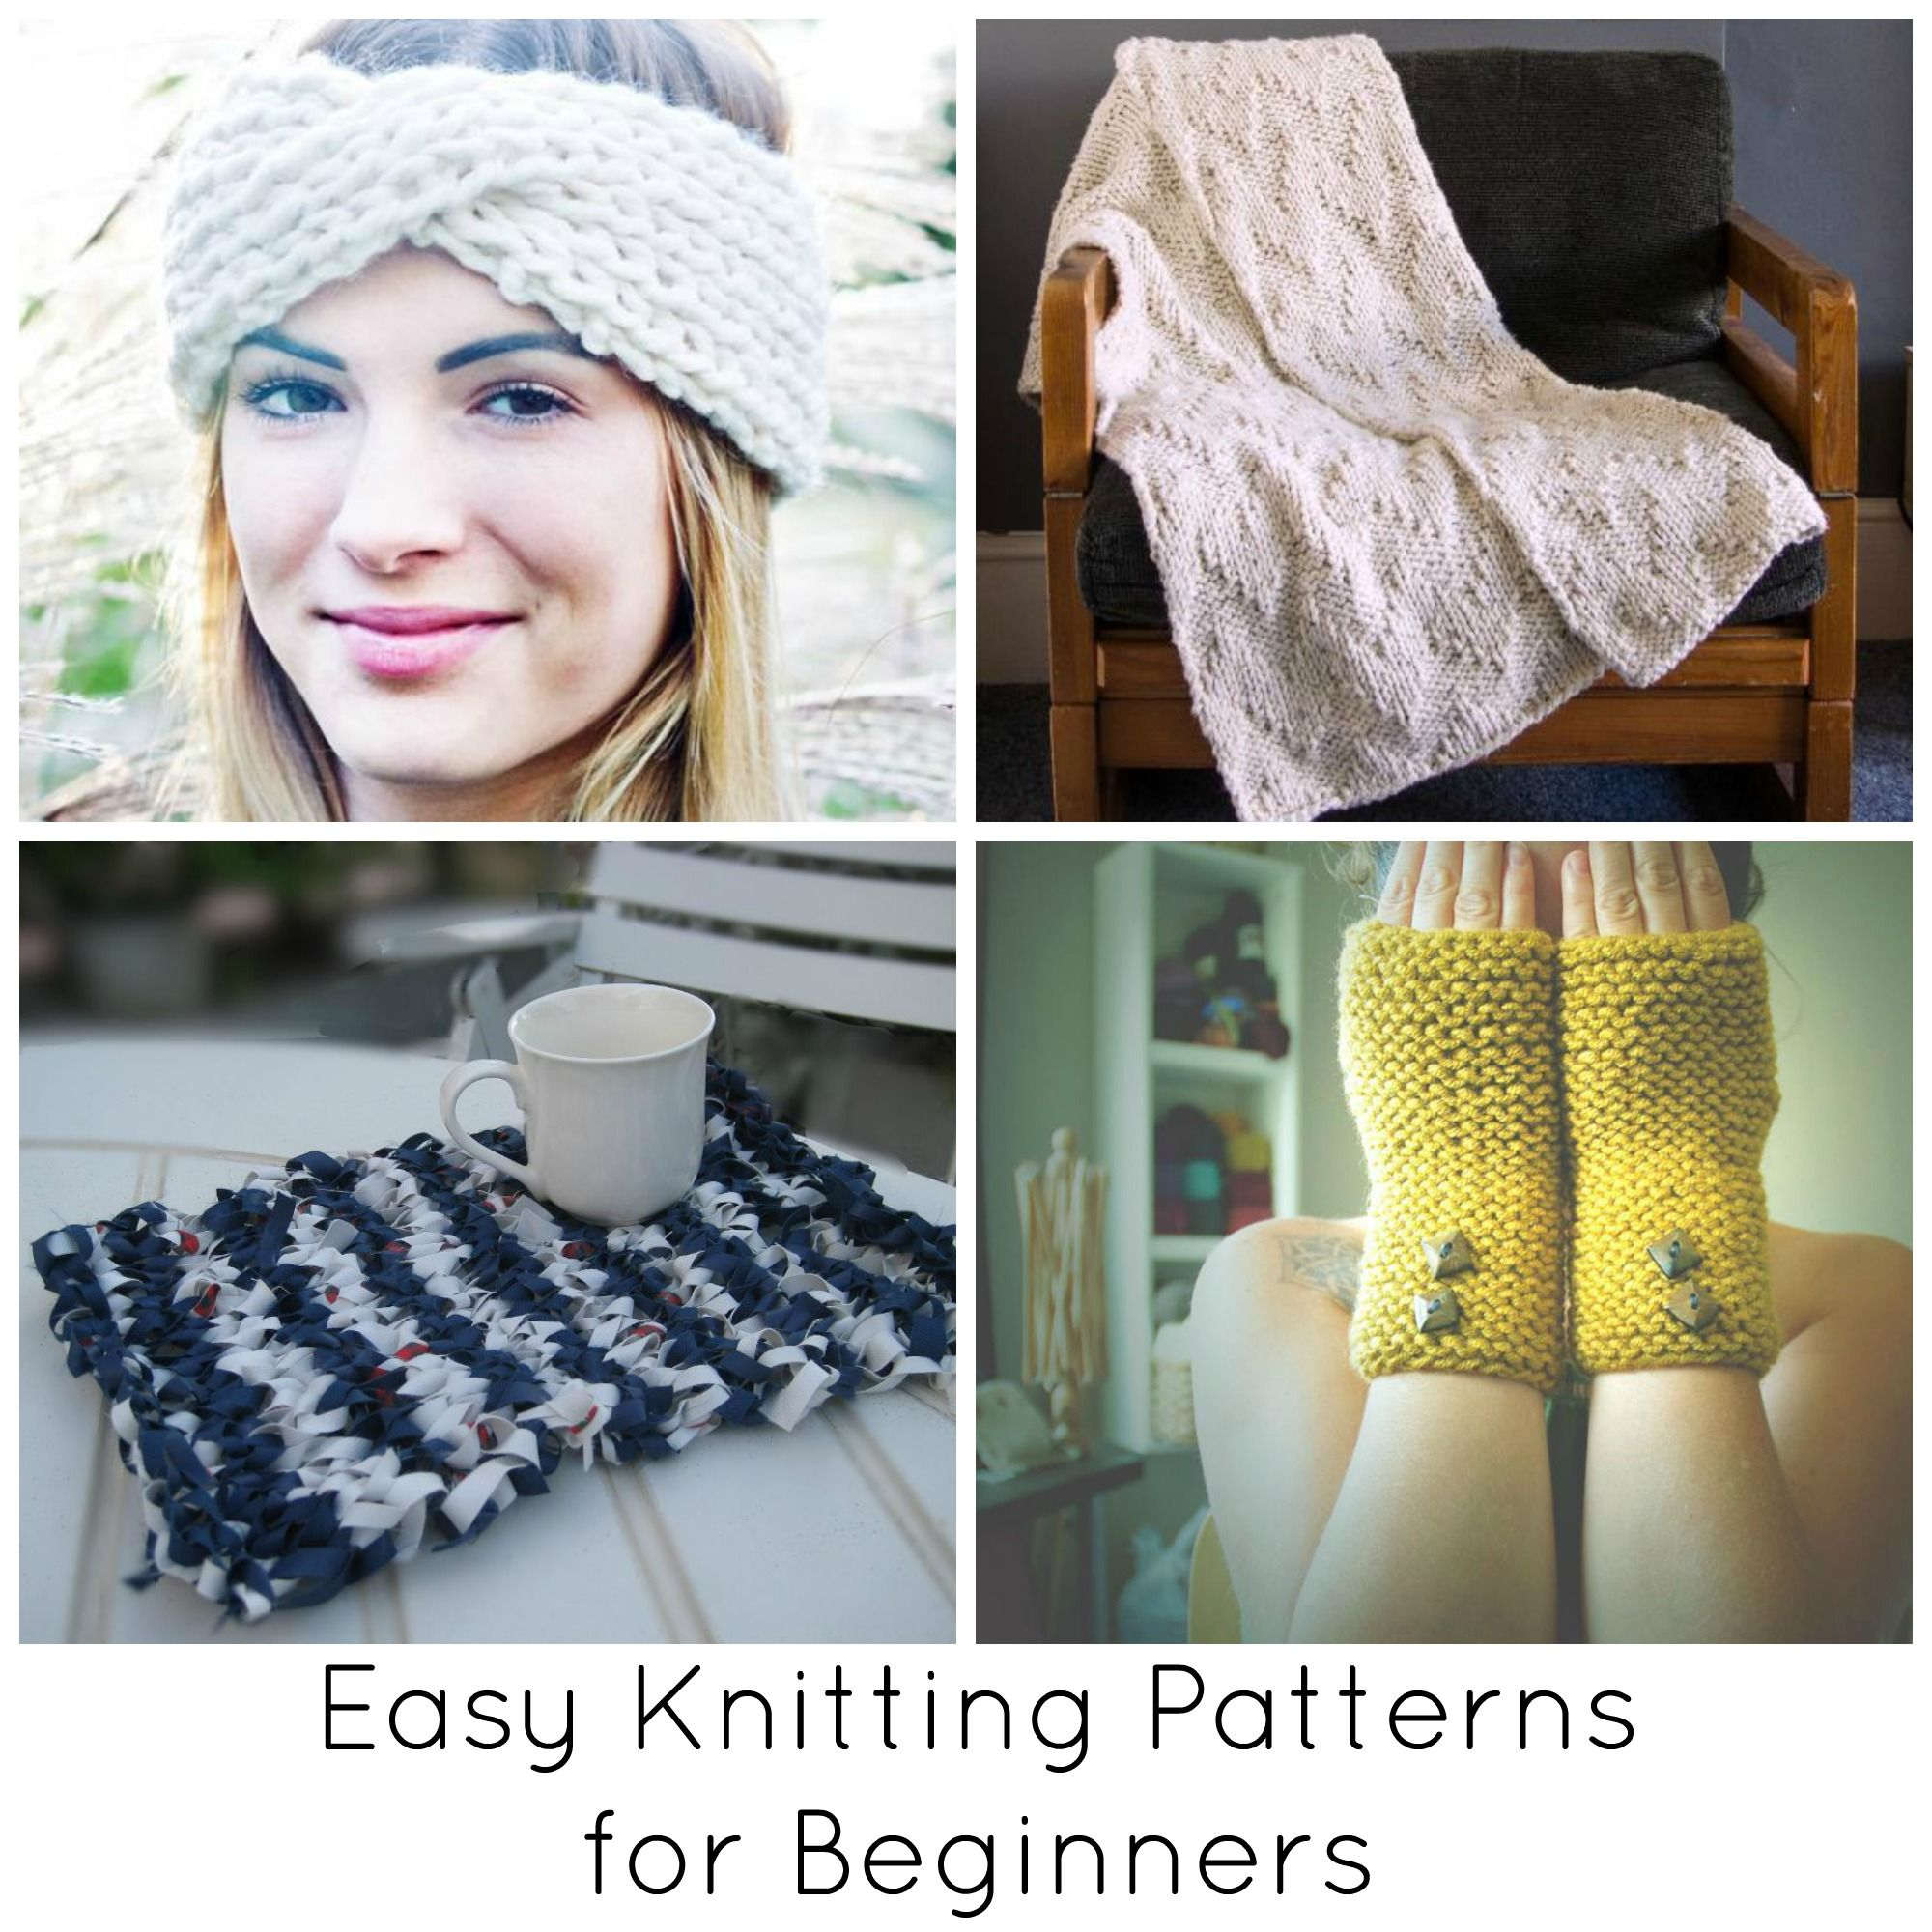 Easy Knitting Patterns for Beginners Beyond Scarves